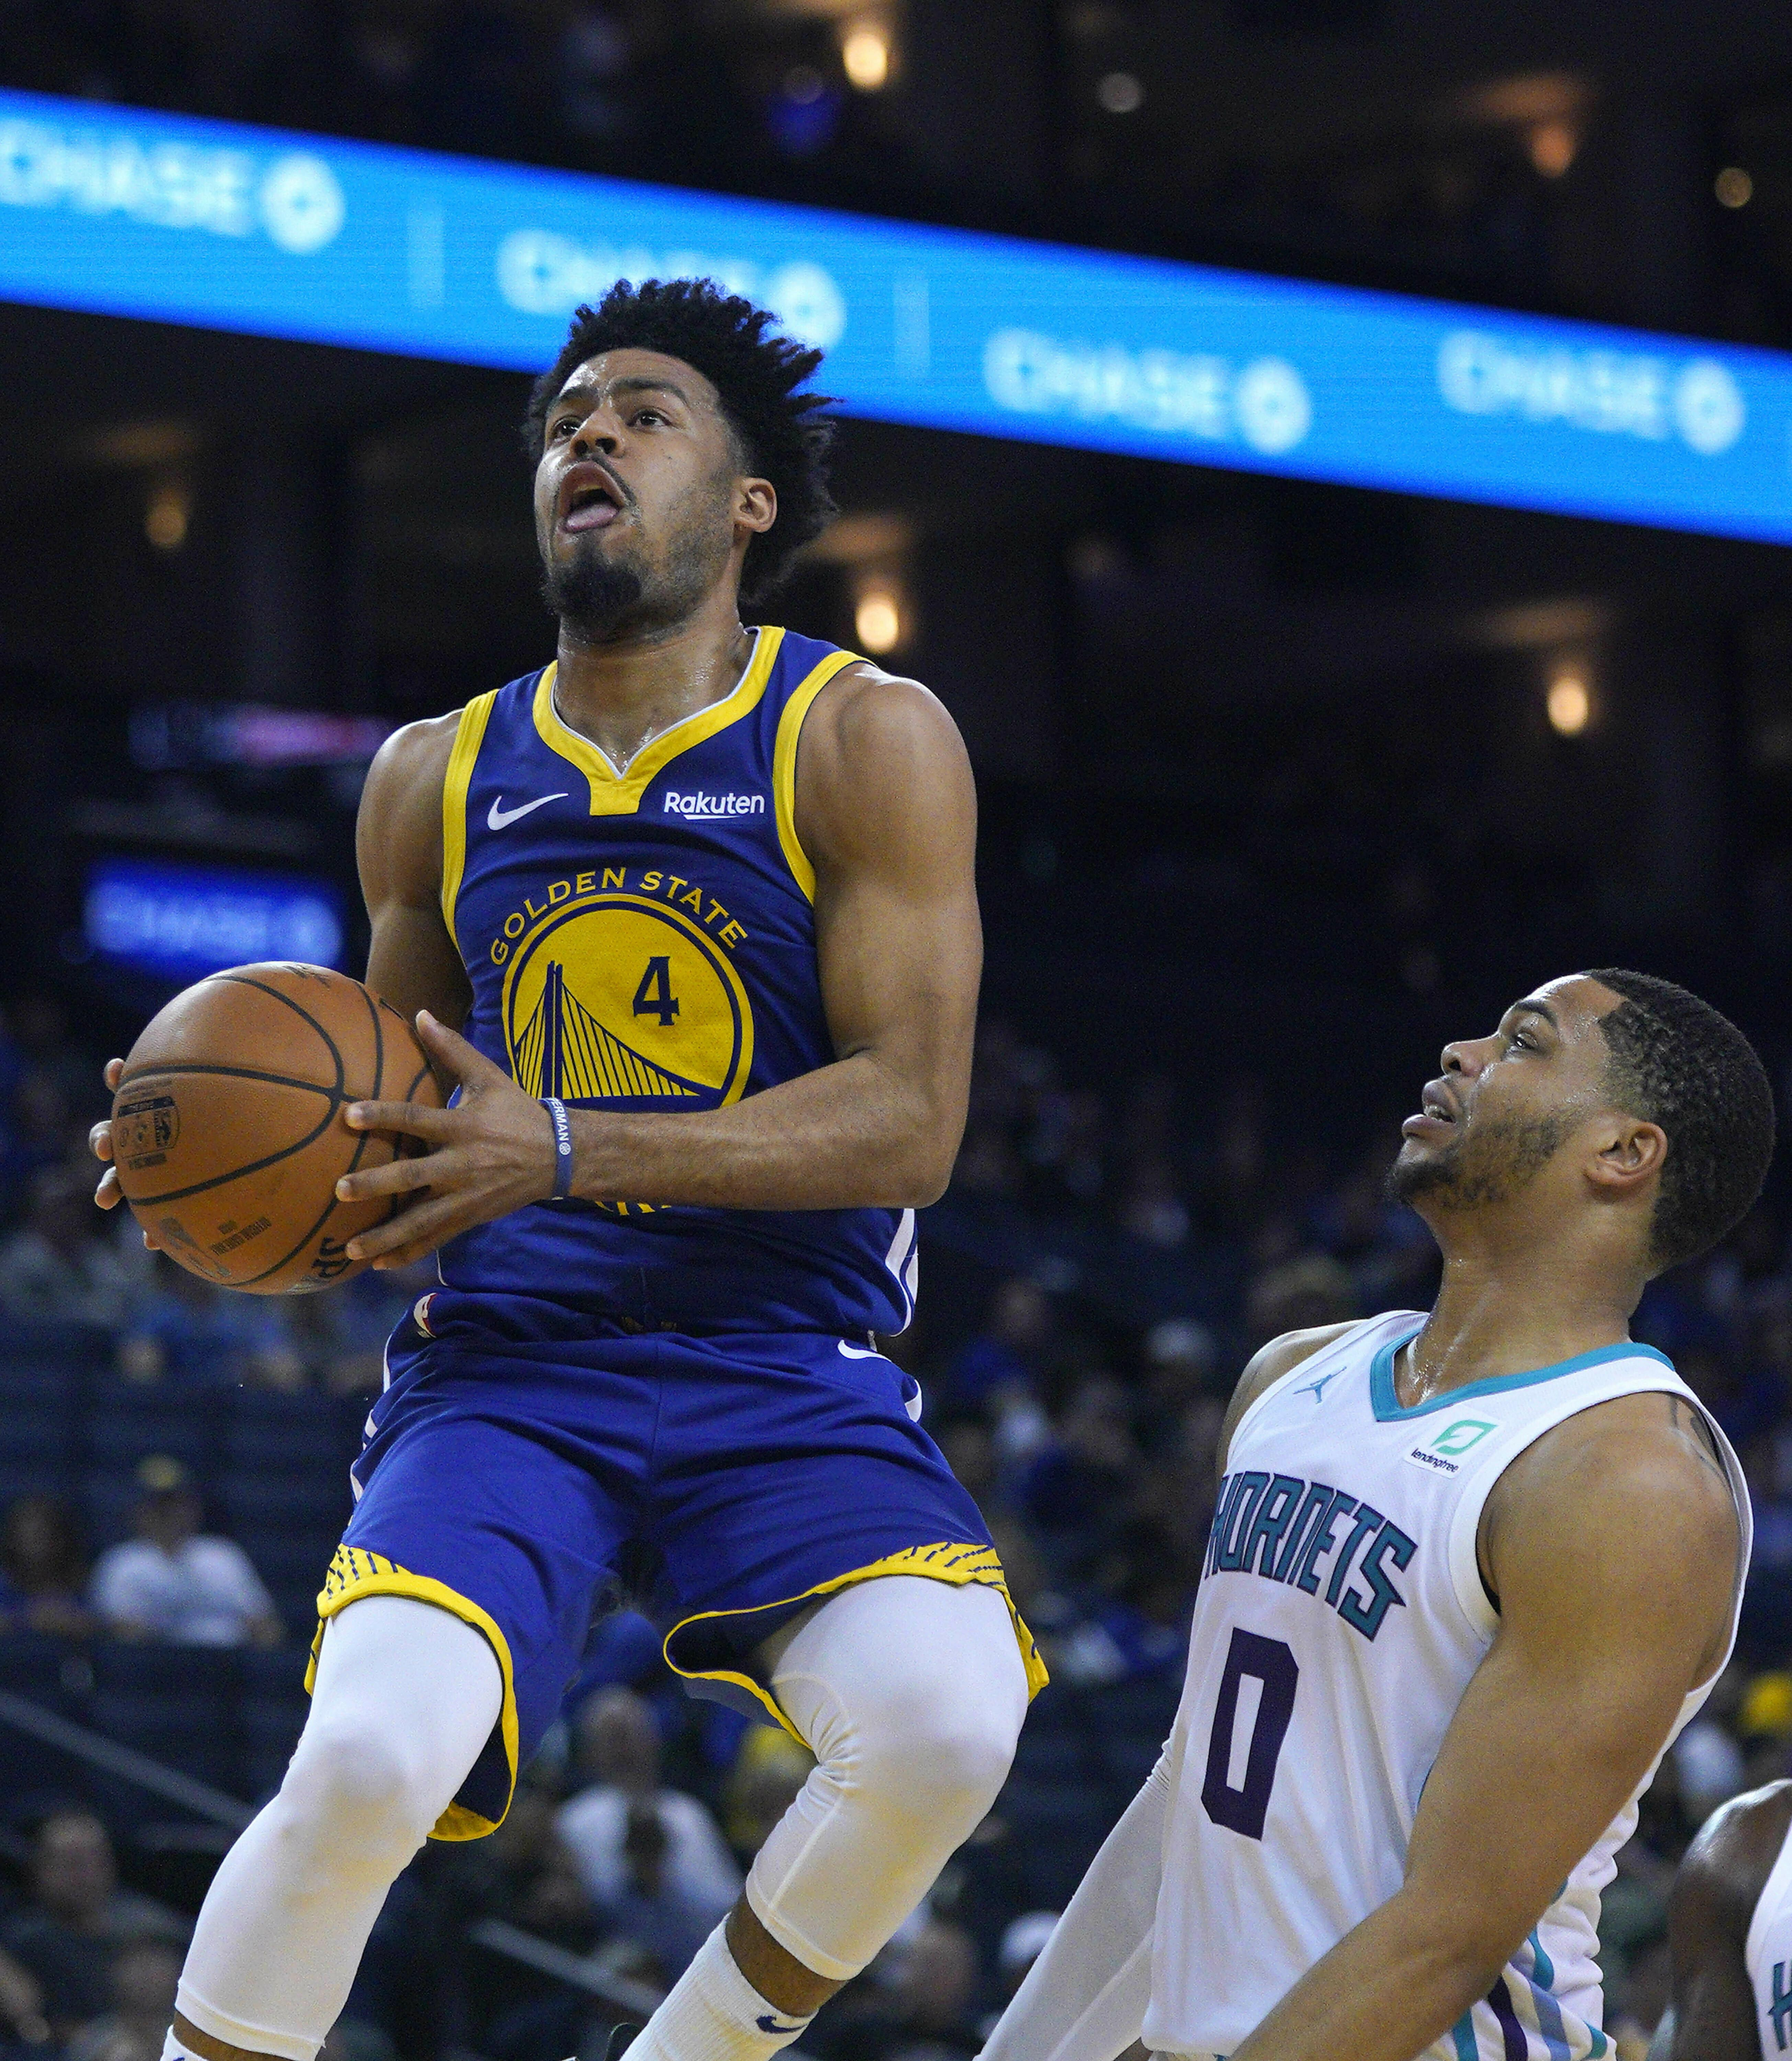 Warriors Game Nba Live Stream Reddit: NBA Roundup: Warriors Rout Hornets, Clinch 5th Straight